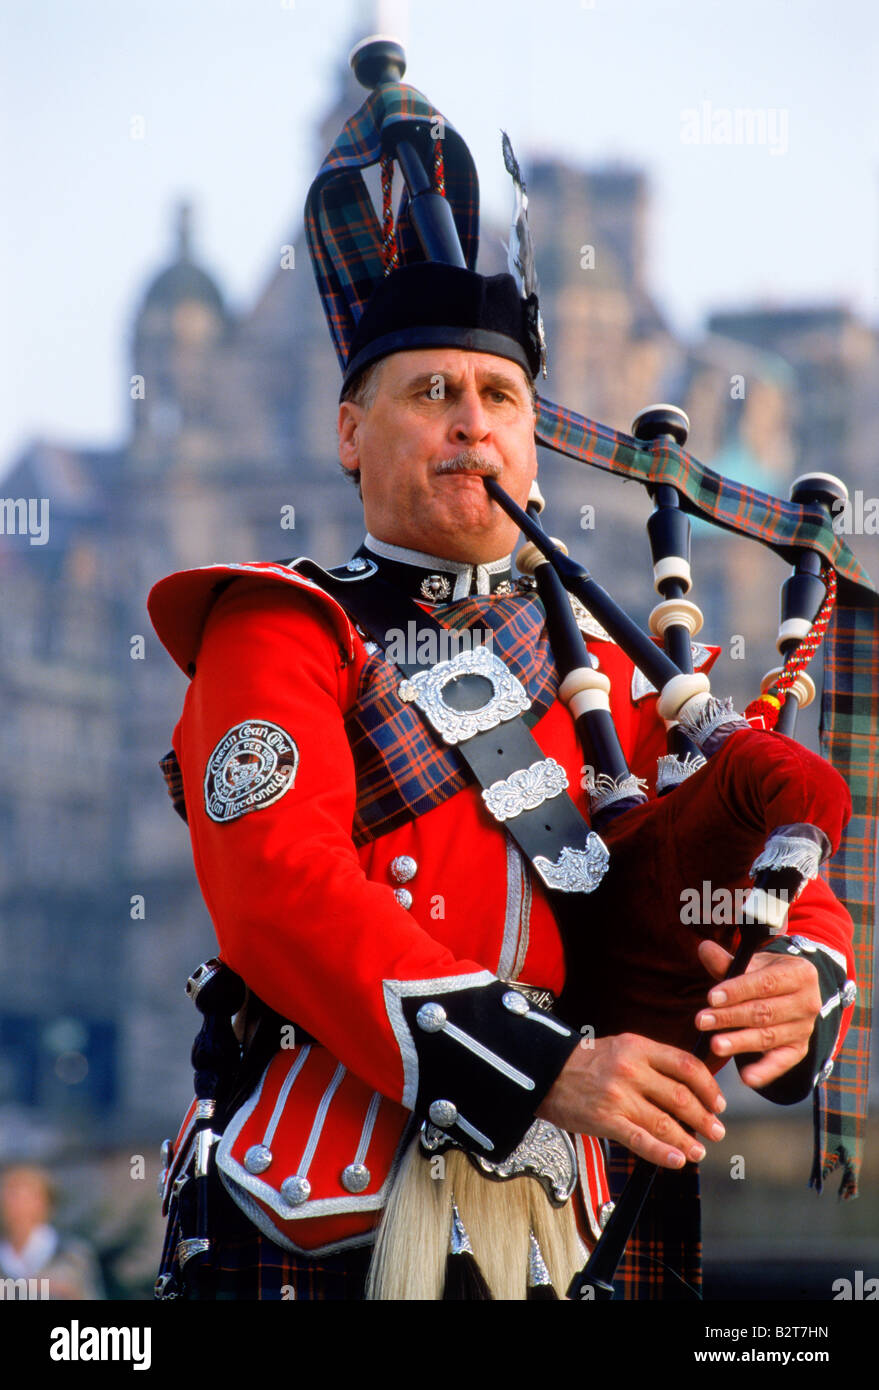 Bagpiper playing near Scott Monument at city center of Edinburgh, Scotland - Stock Image